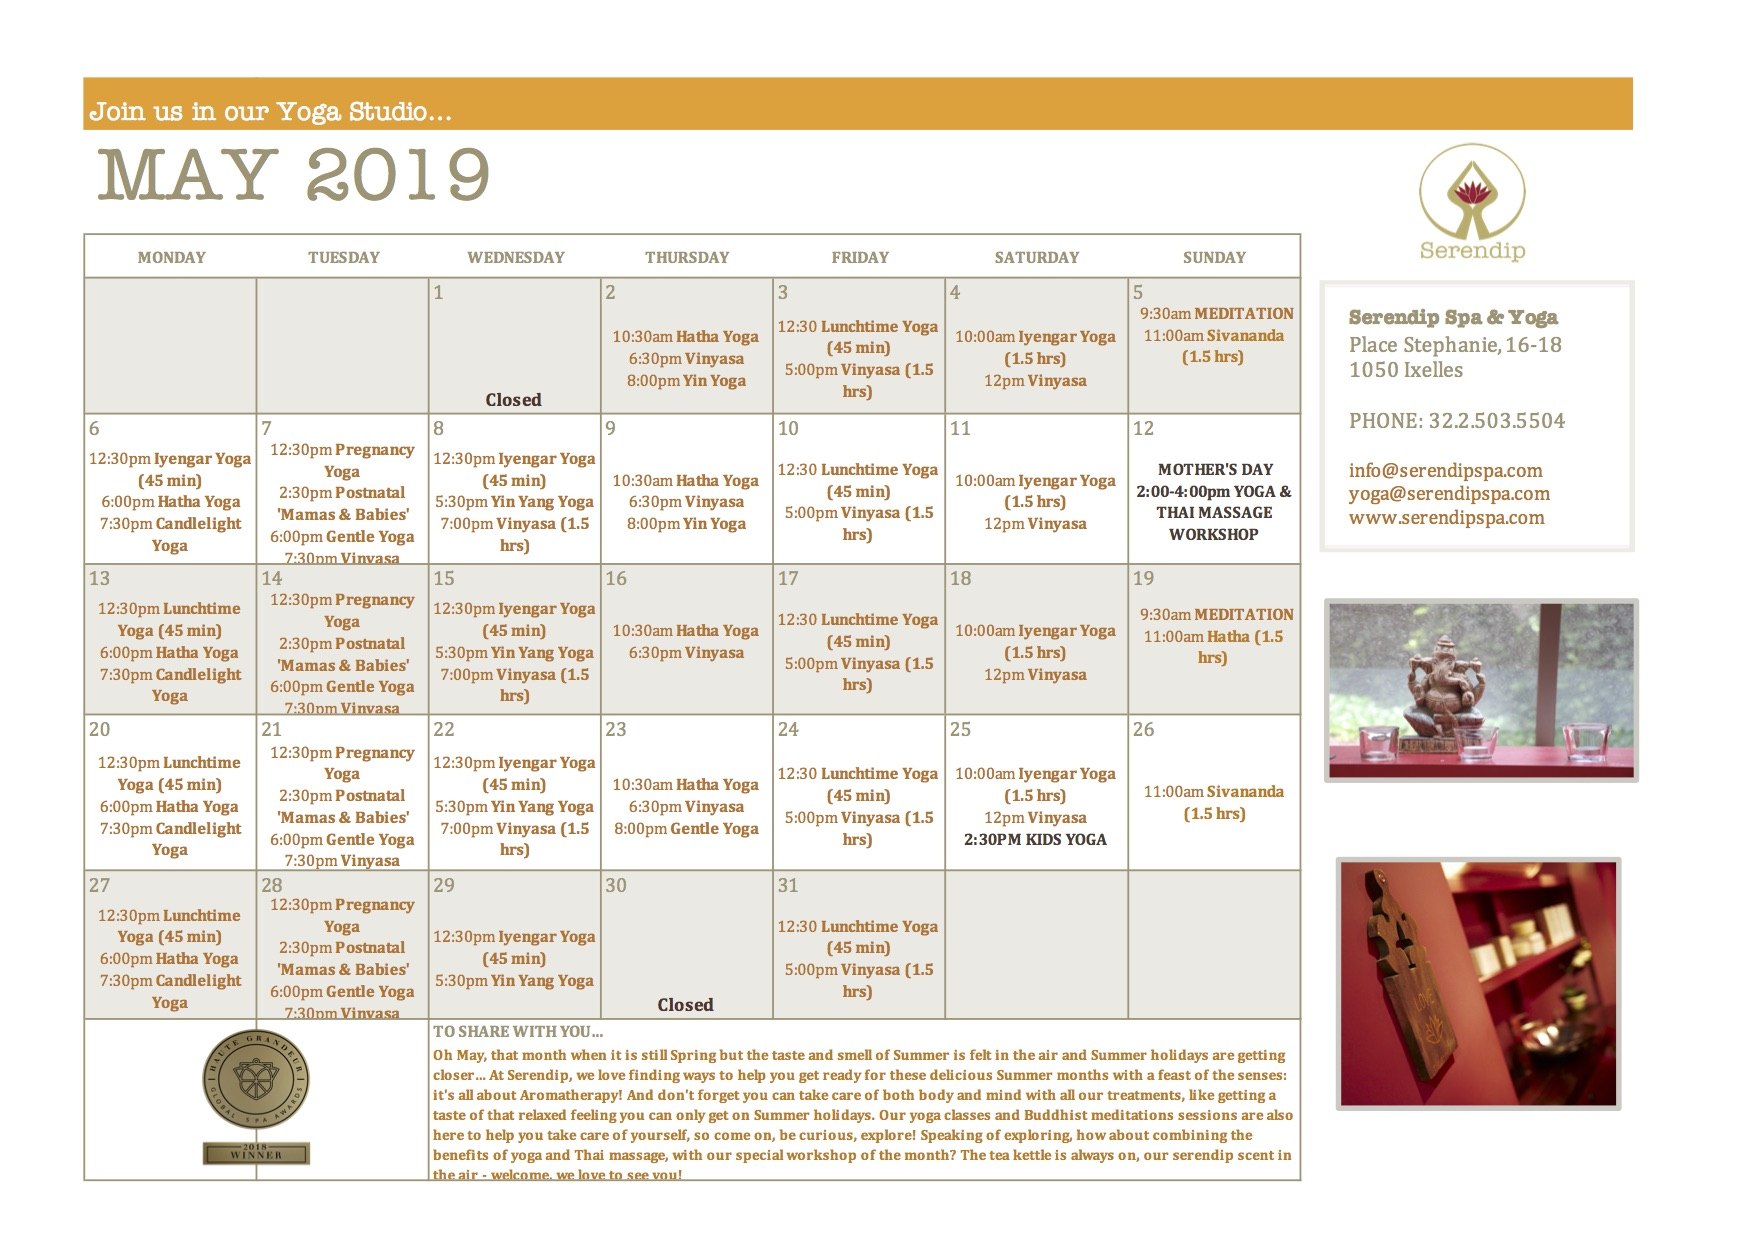 serendip spa and yoga calendar 2019_May A4 FRONT.jpg